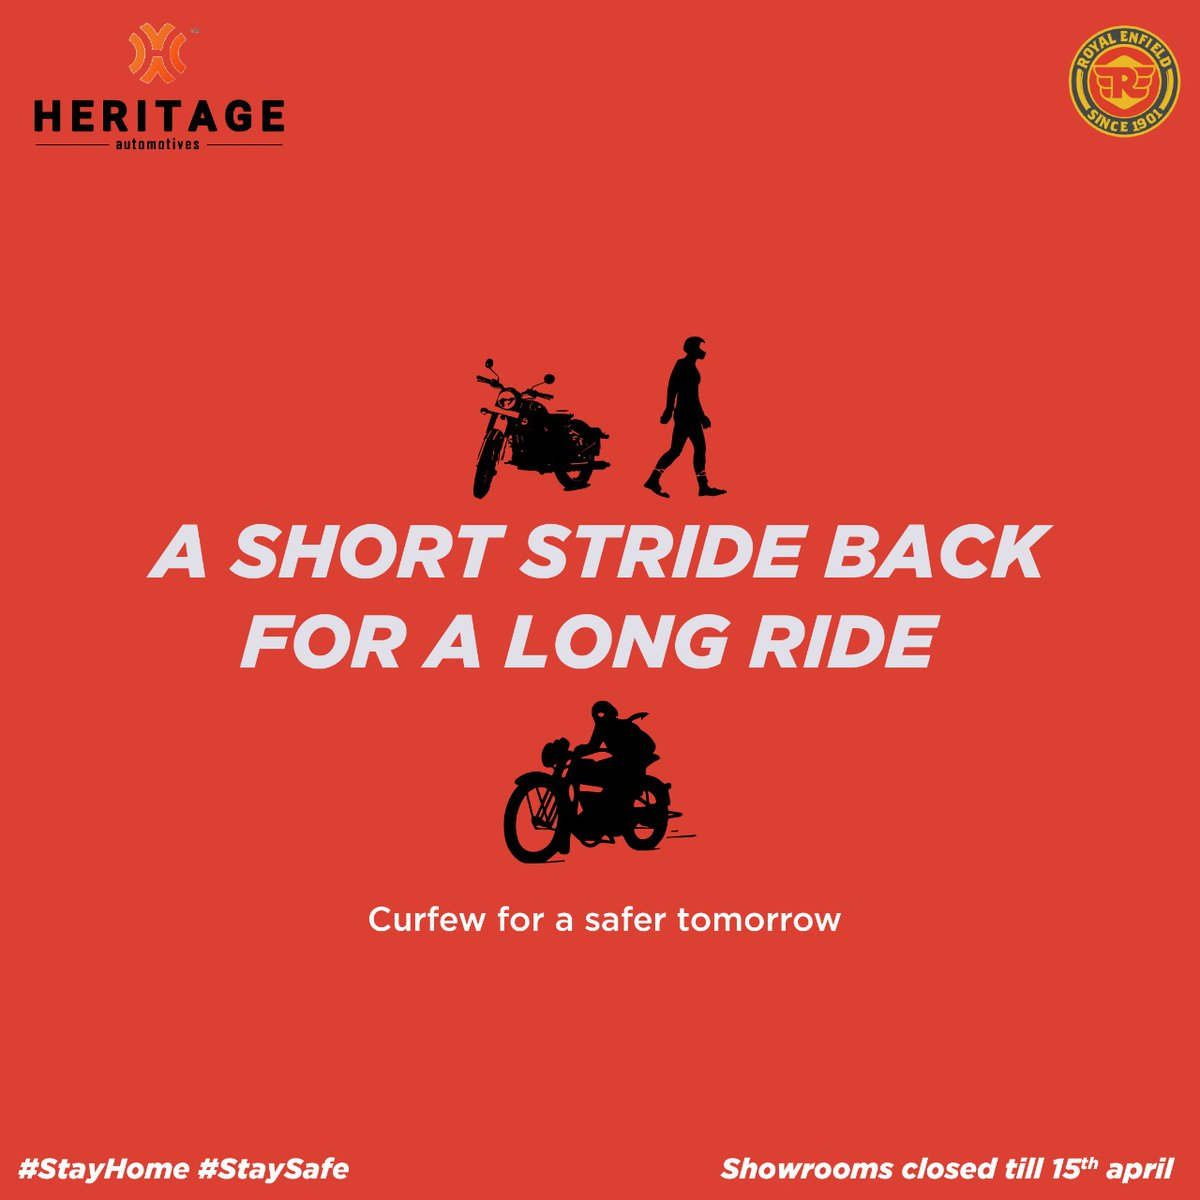 Following National Lock down announced by PM, All Heritage Automotives showrooms will be closed until further notice. We Request everyone to Stay Home and Stay safe for a better tomorrow. . .#stayhome #staysafe #lockdown #curfew #royalenfield #bullet #royalenfieldindia #classicpic.twitter.com/VOkli3q9hi